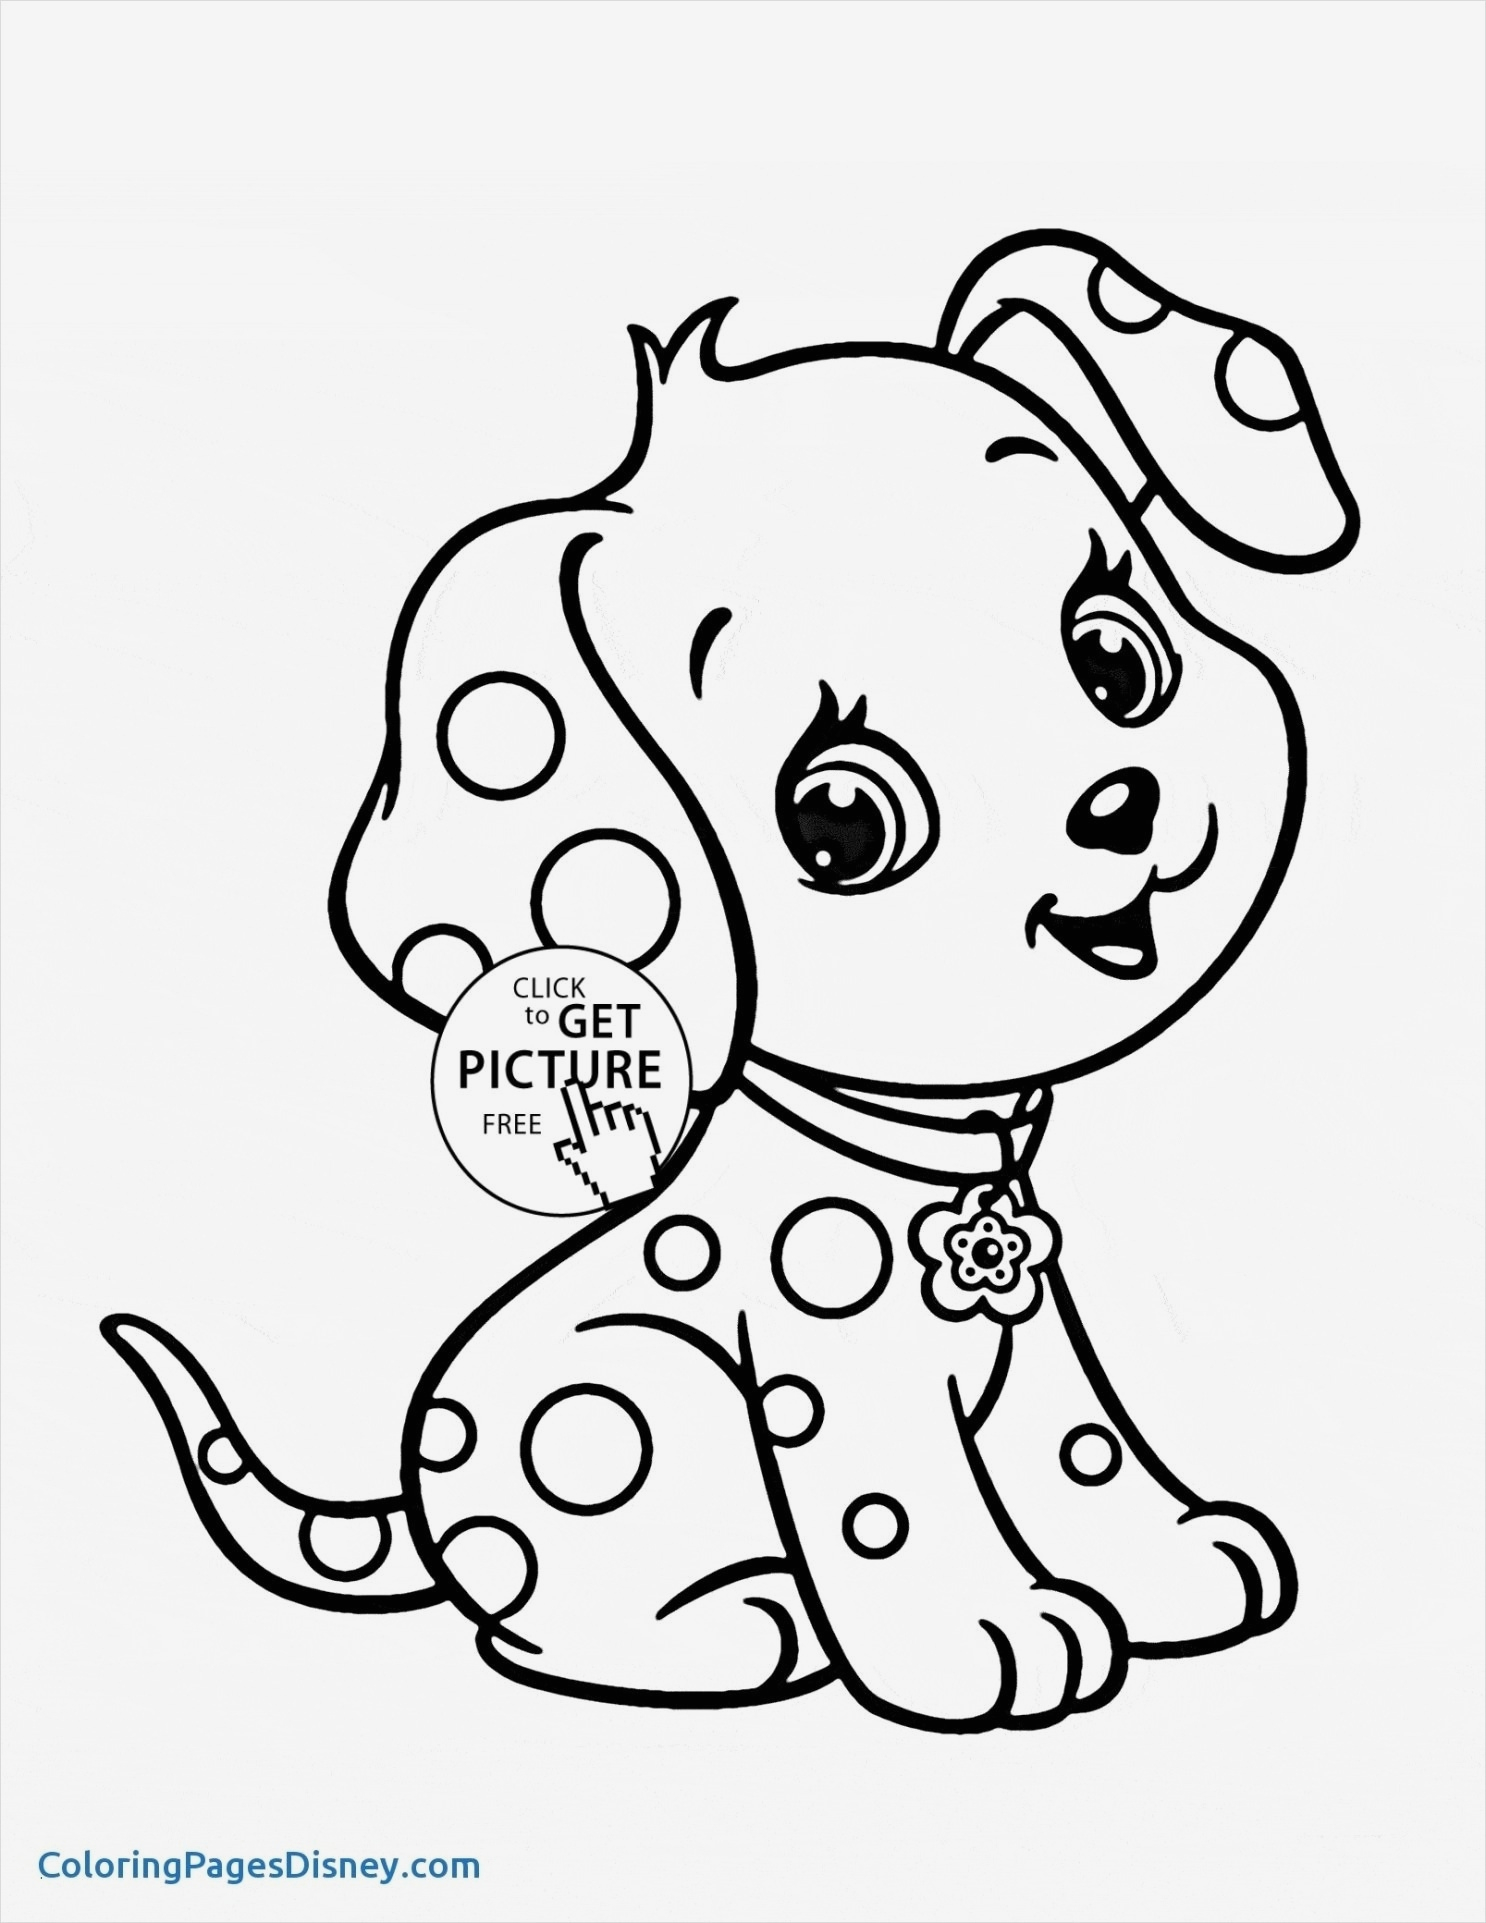 free disney halloween coloring pages Download-Free Halloween Coloring Pages Free Print Free Disney Halloween Coloring Pages Heathermarxgallery – Free Free 4-p